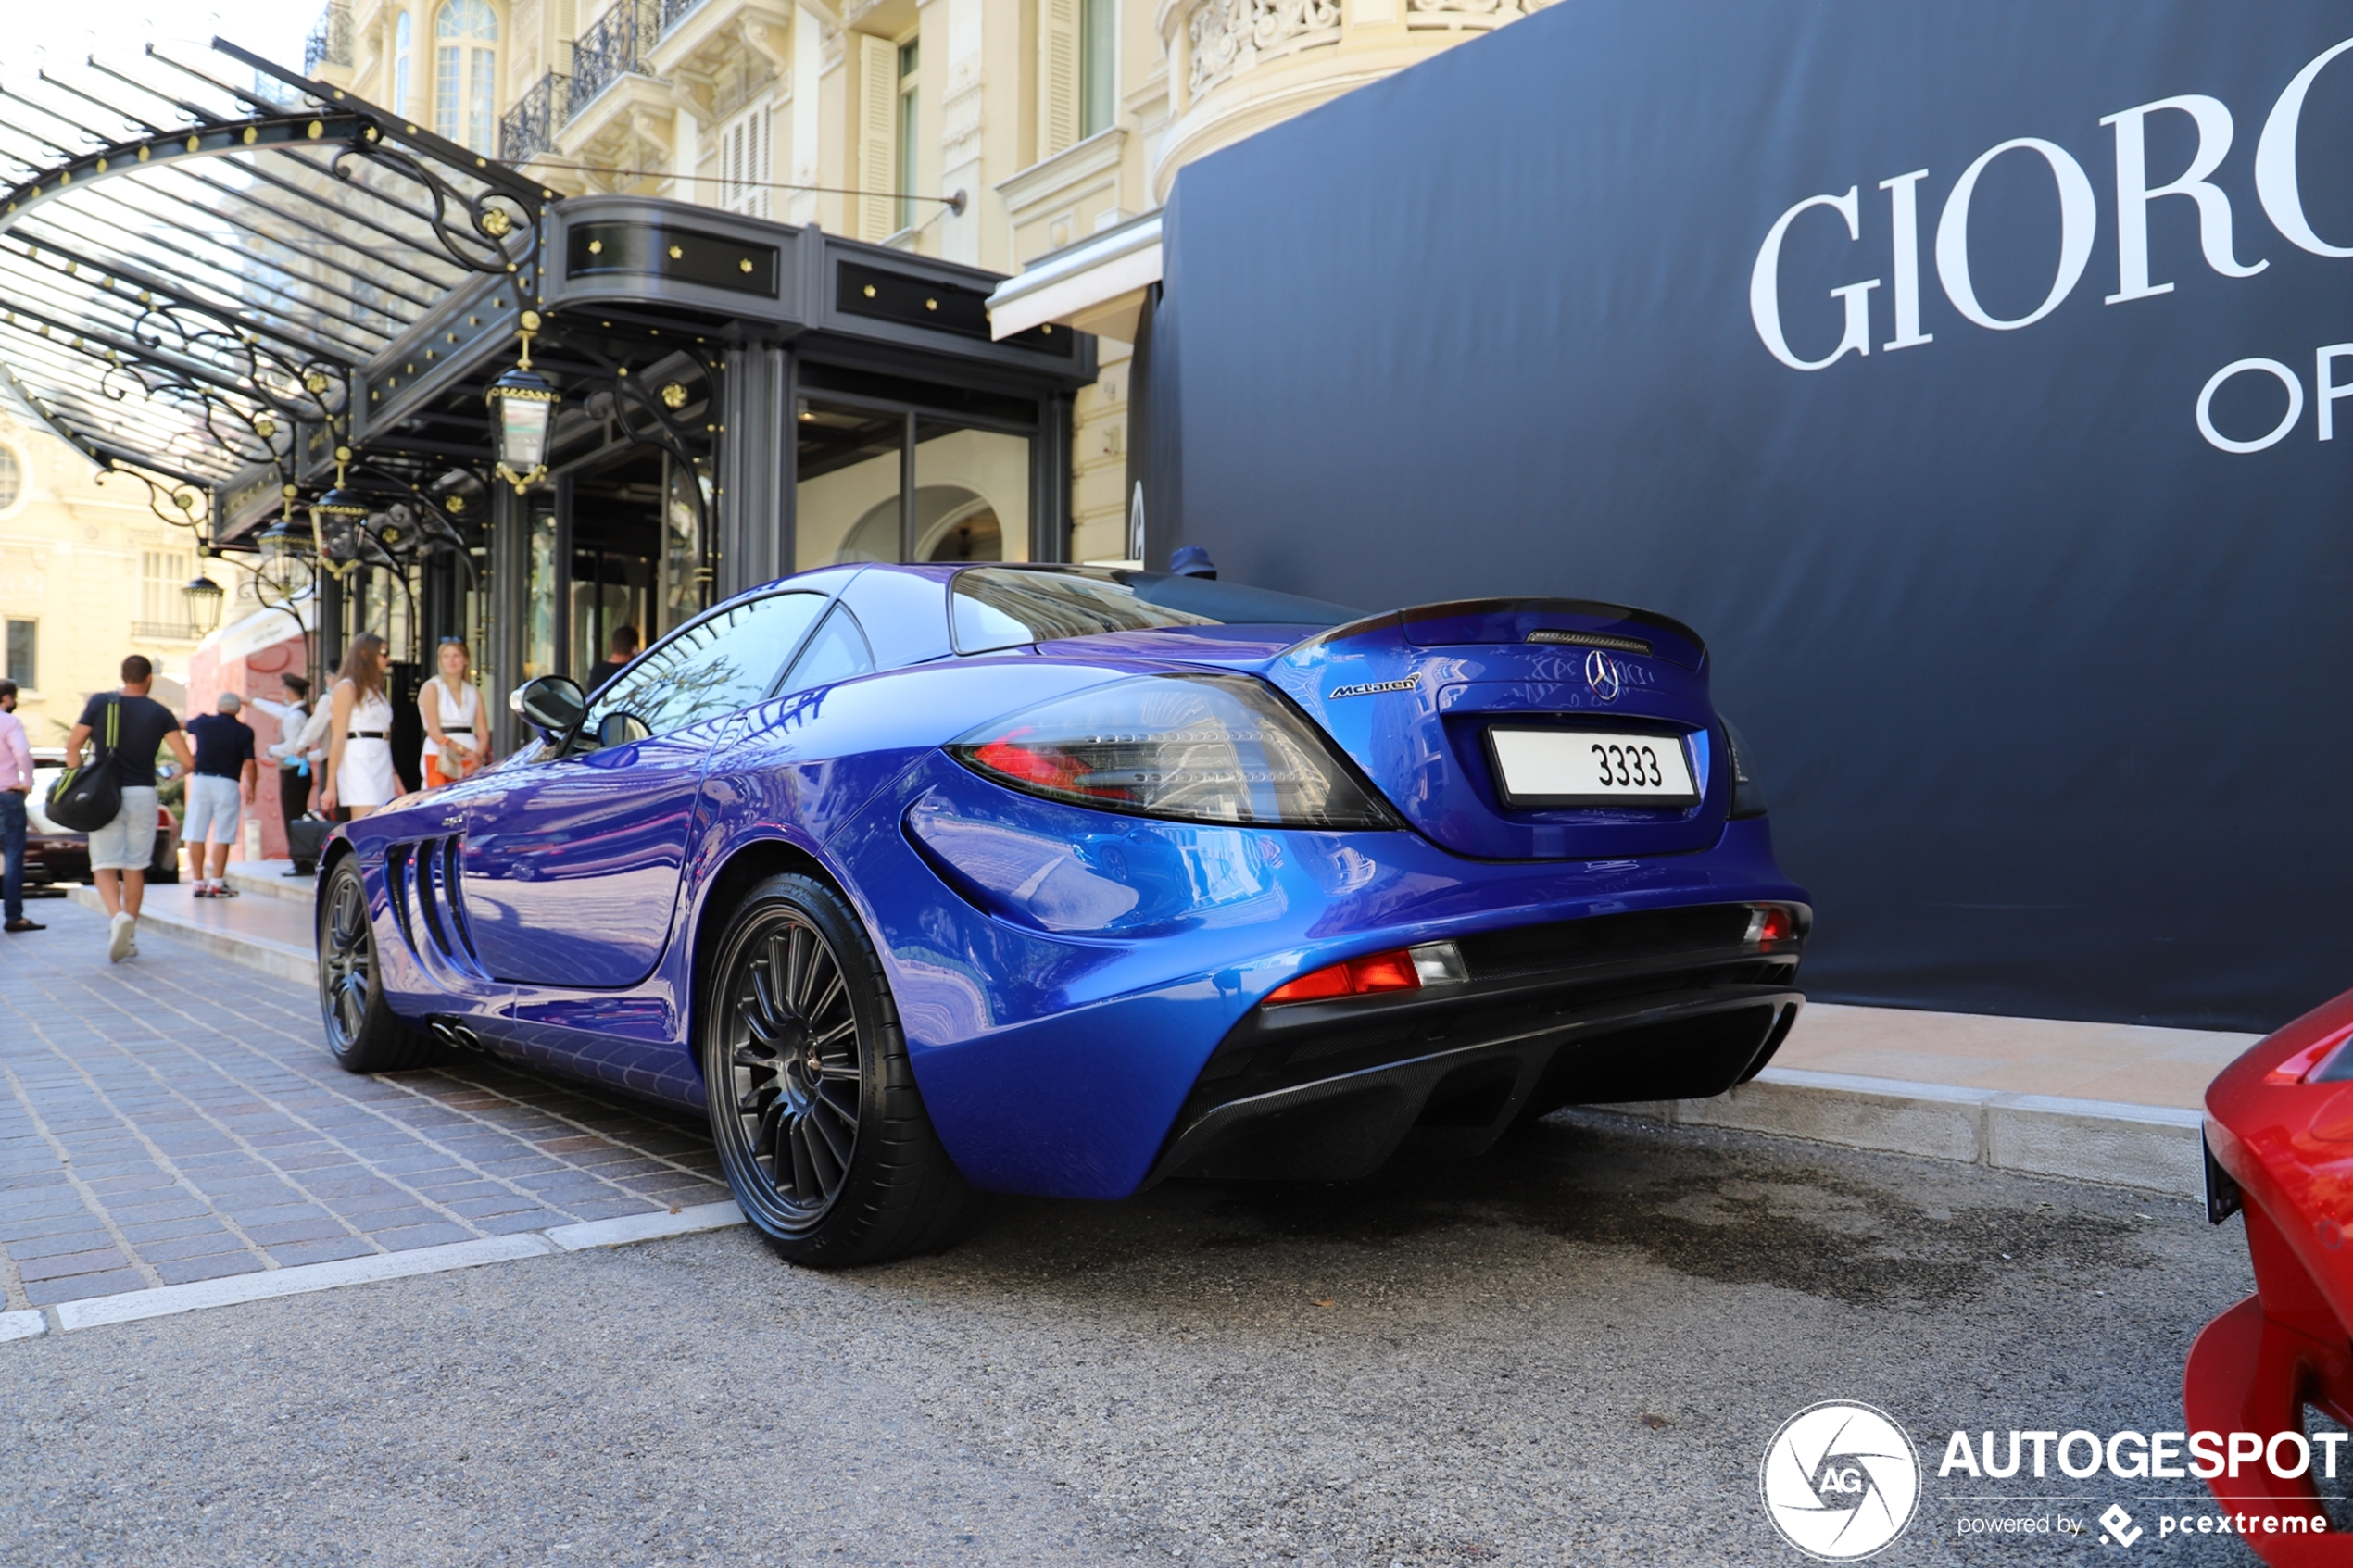 Mercedes-Benz SLR McLaren Edition is prachtig in Monaco